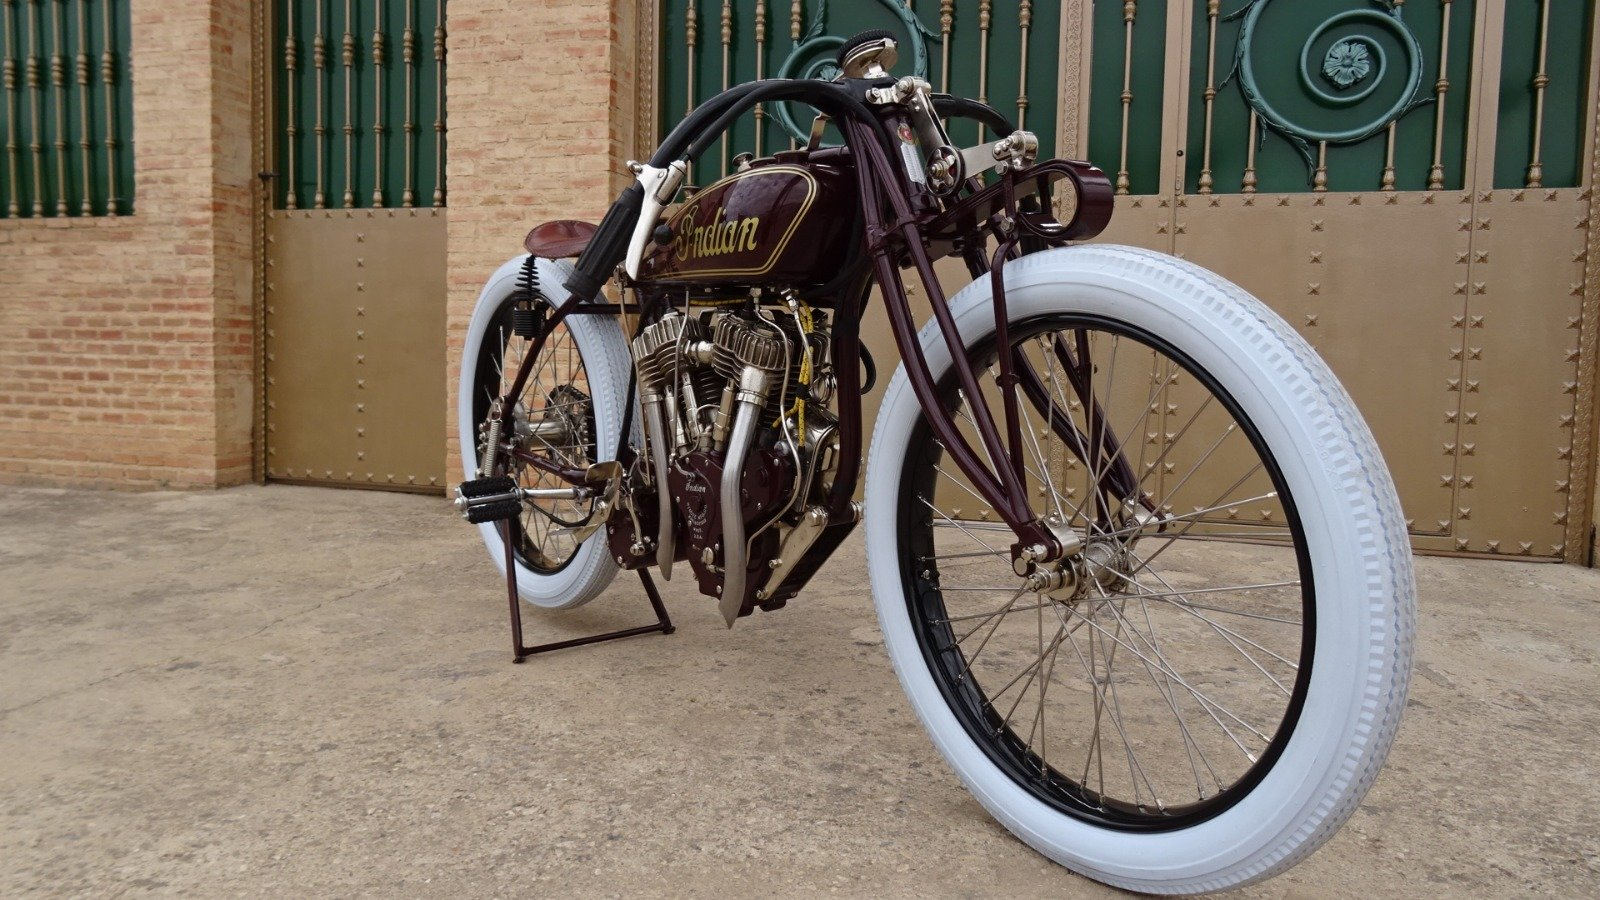 1920 INDIAN POWERPLUS TT RACER 1000cc For Sale (picture 1 of 6)